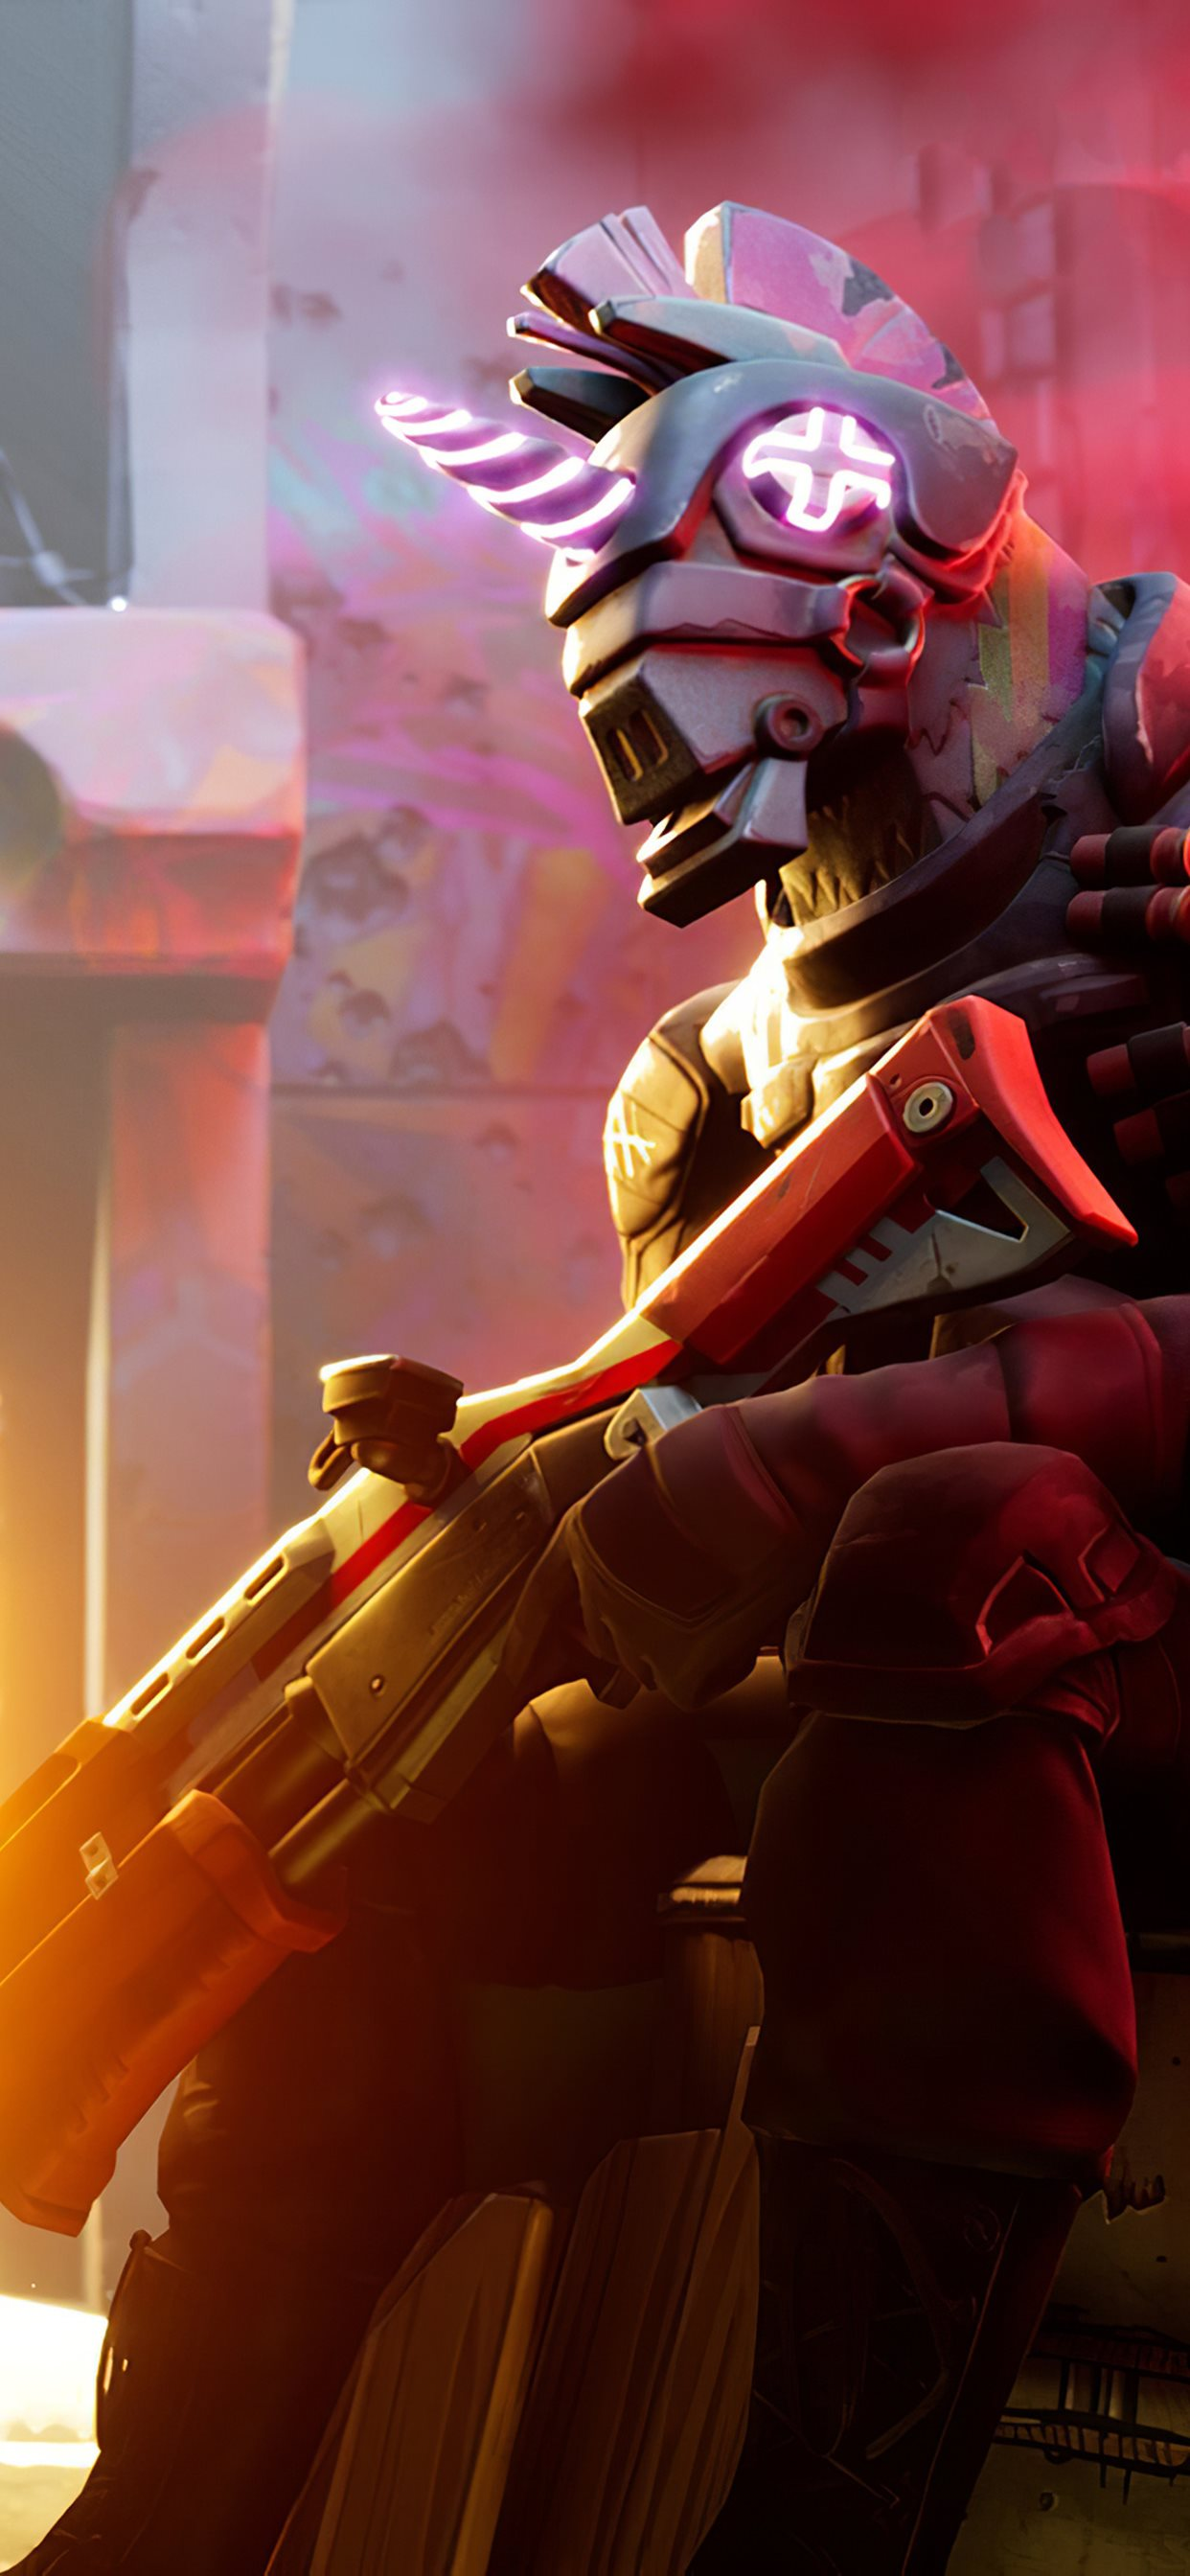 Fortnite Chapter 2 4k Iphone X Wallpapers Free Download